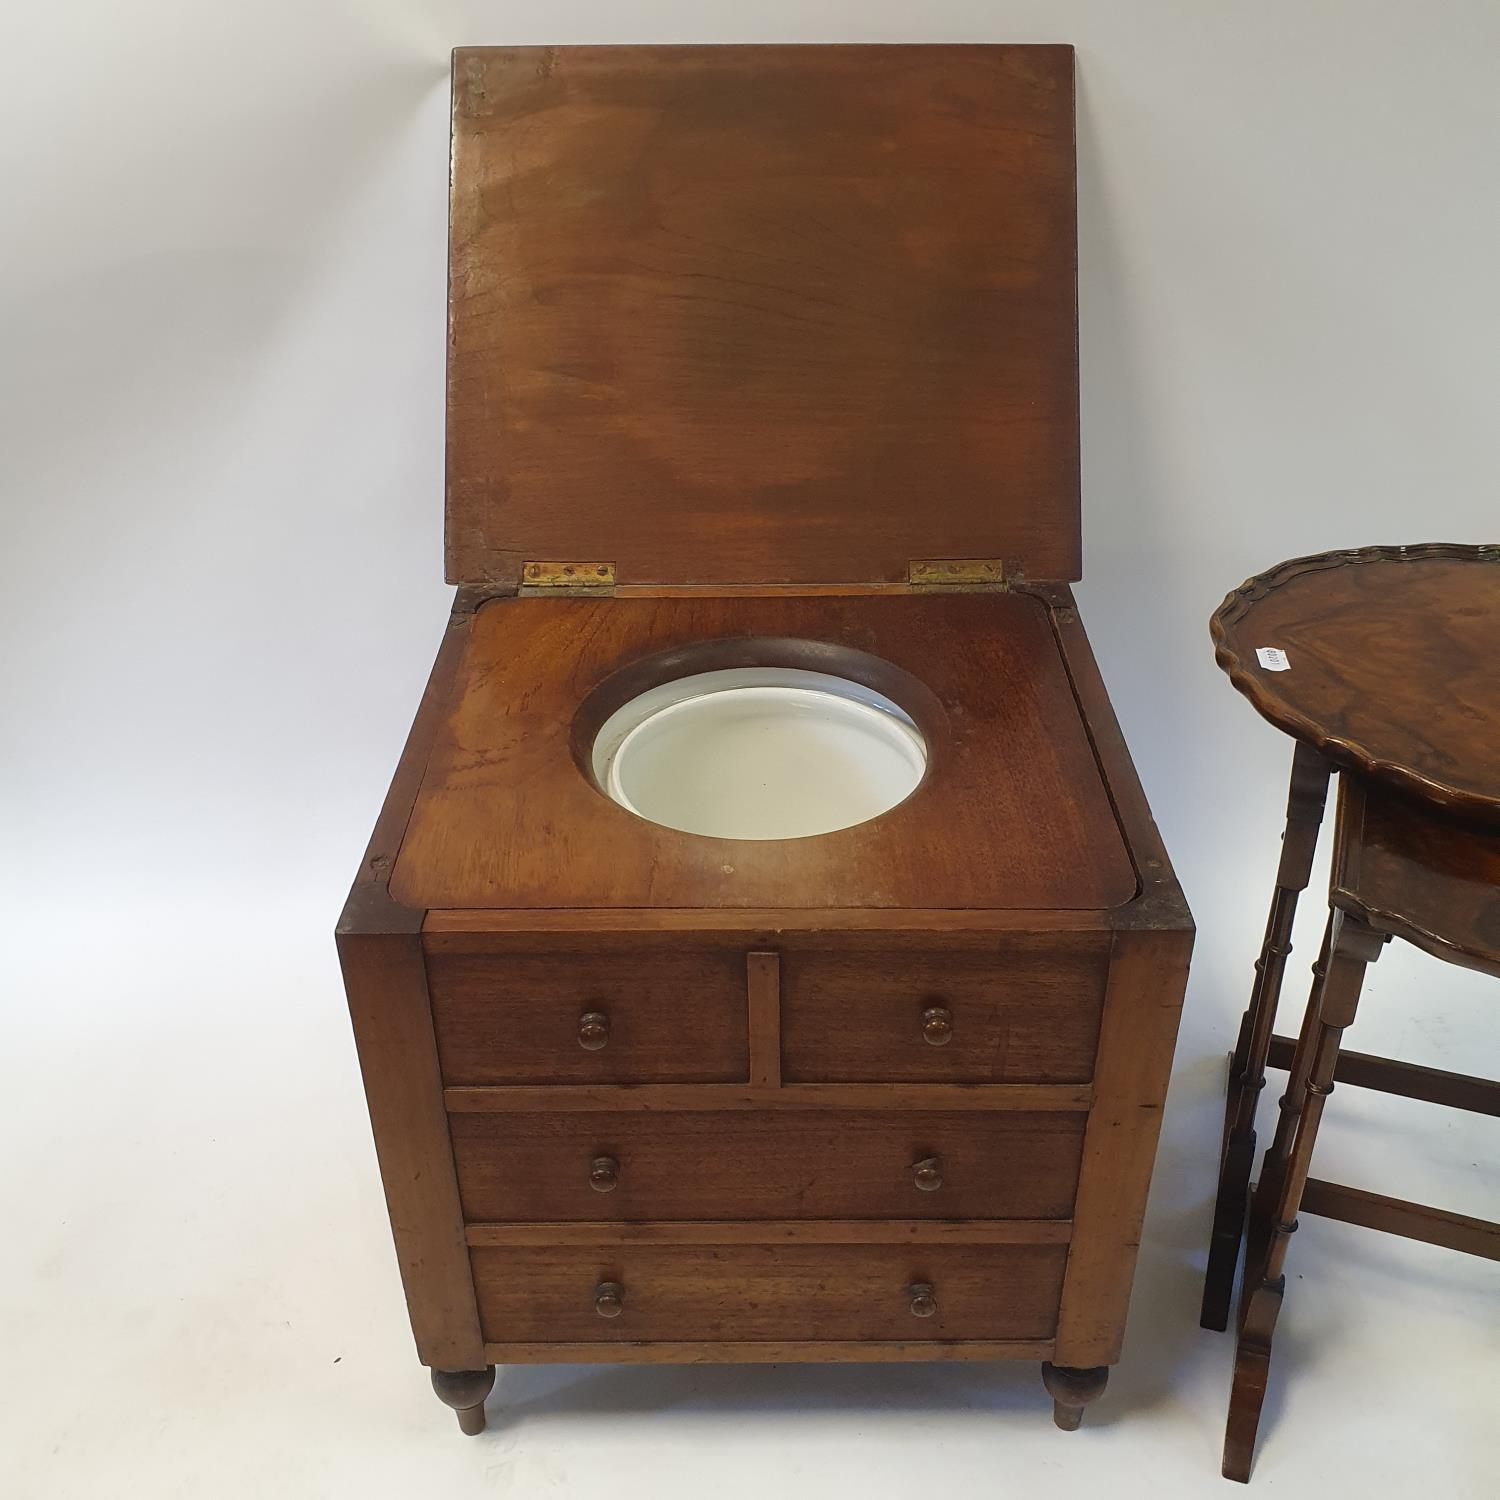 A 19th century mahogany wine table, 53 cm diameter, a commode, two nests of two tables, and a - Image 3 of 3